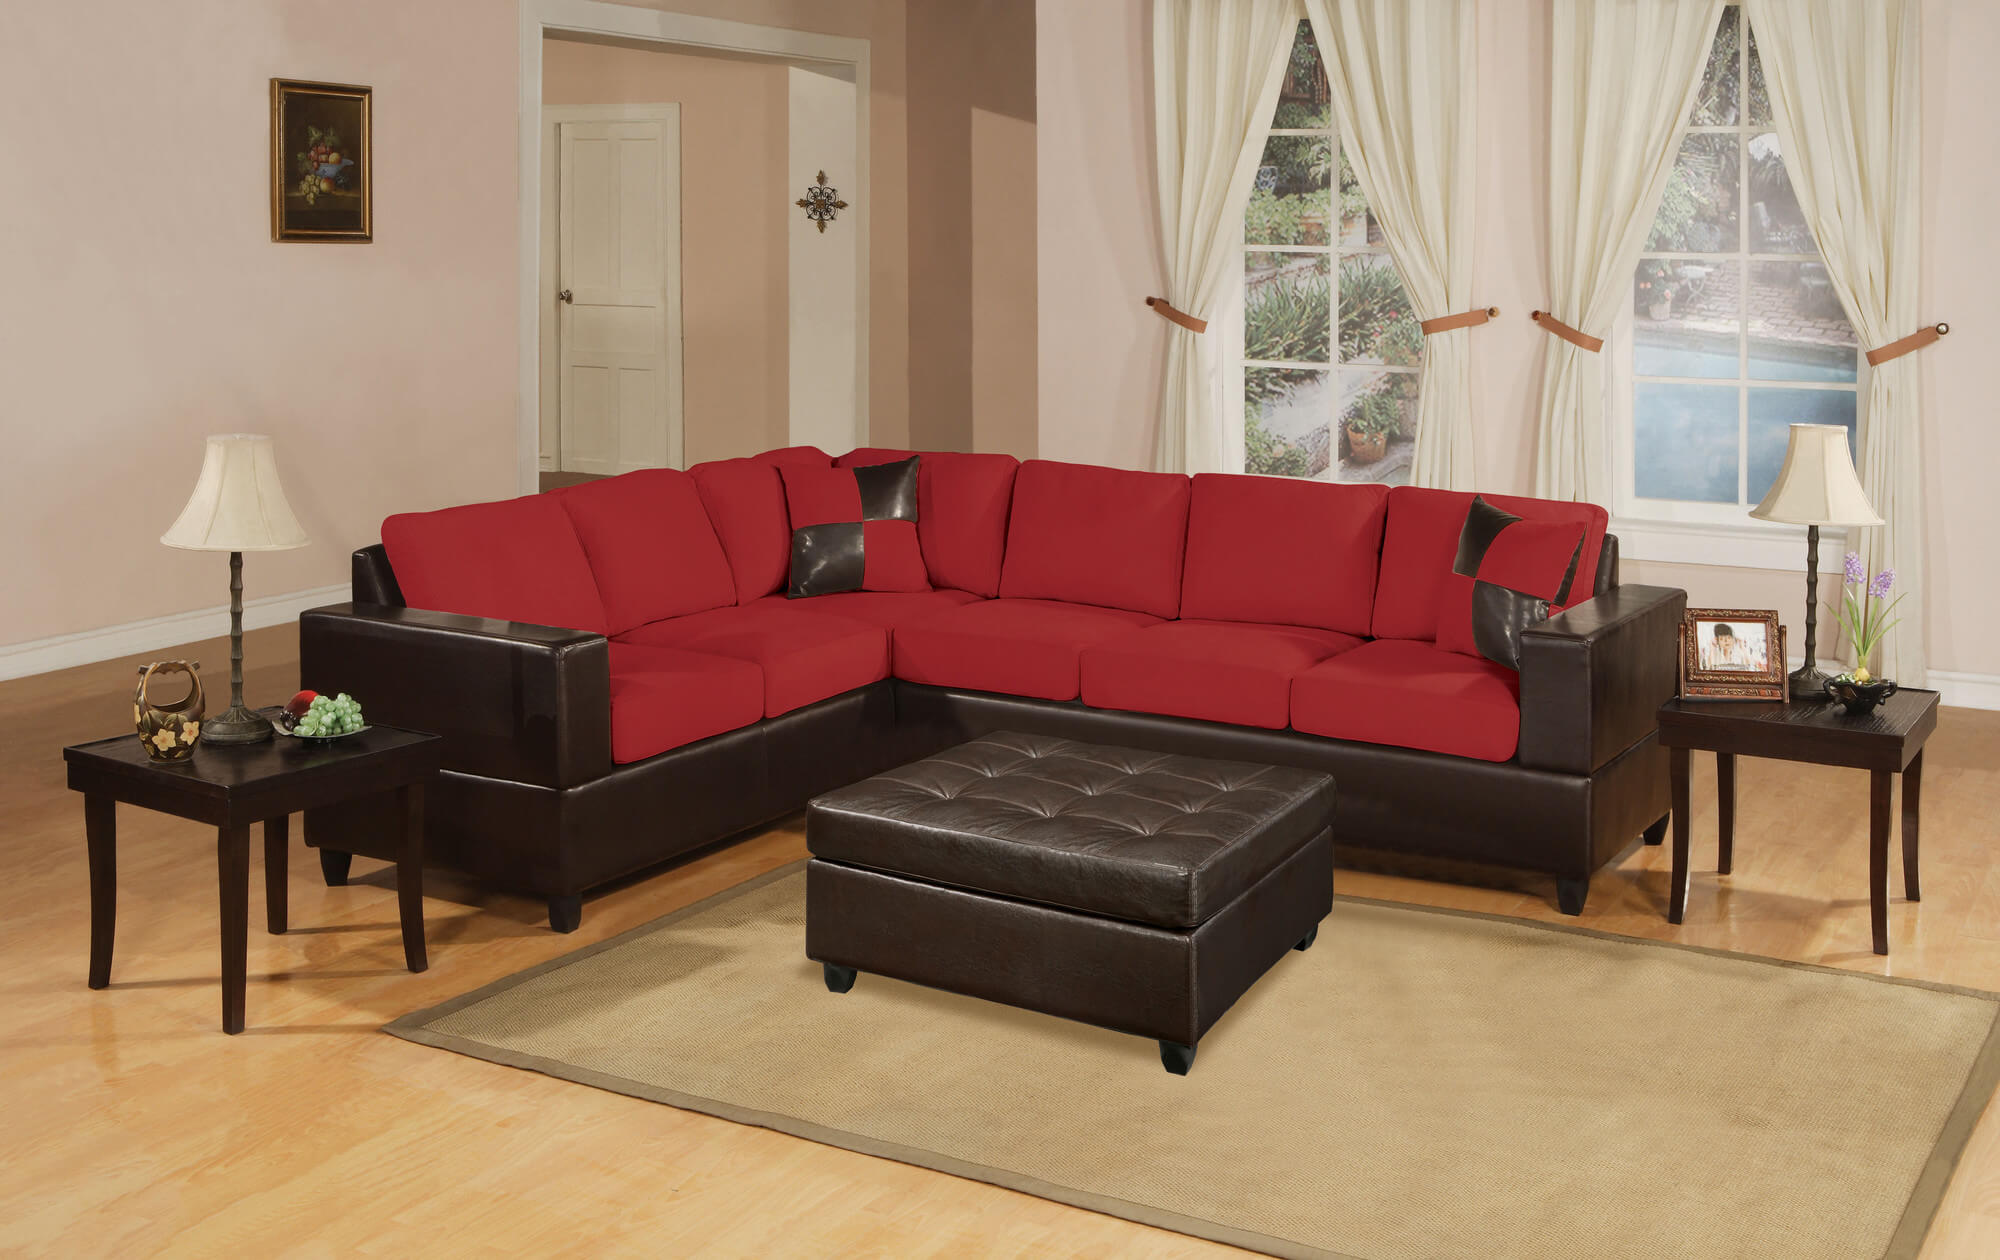 Modern Luxury Sectional Sofas 18 Stylish Modern Red Sectional Sofas